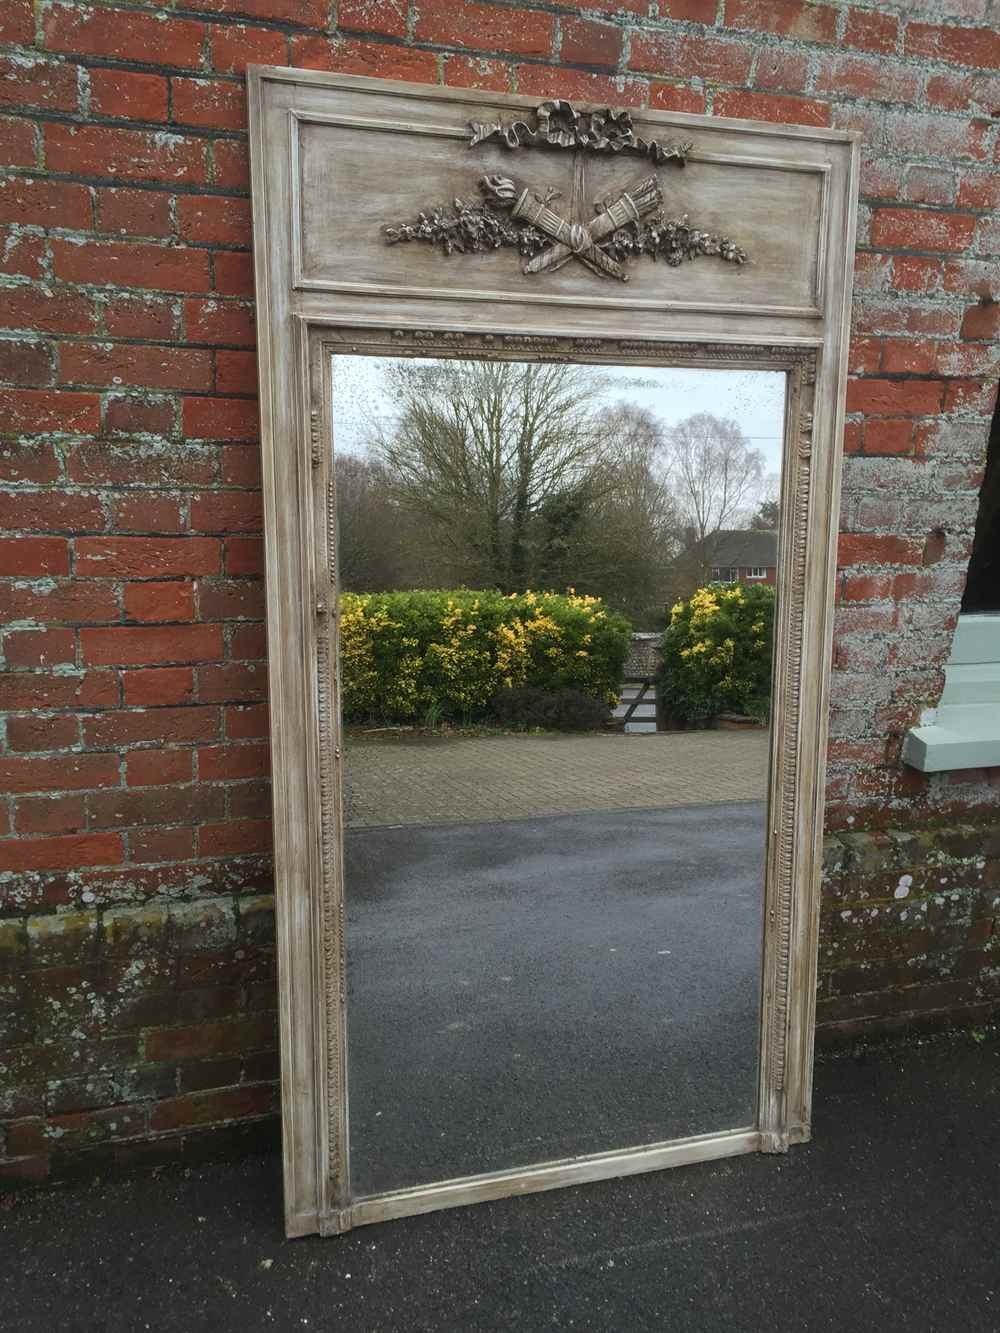 A Large Antique 19th Century French Carved Wood Gesso Painted Intended For Large French Mirror (Image 2 of 15)